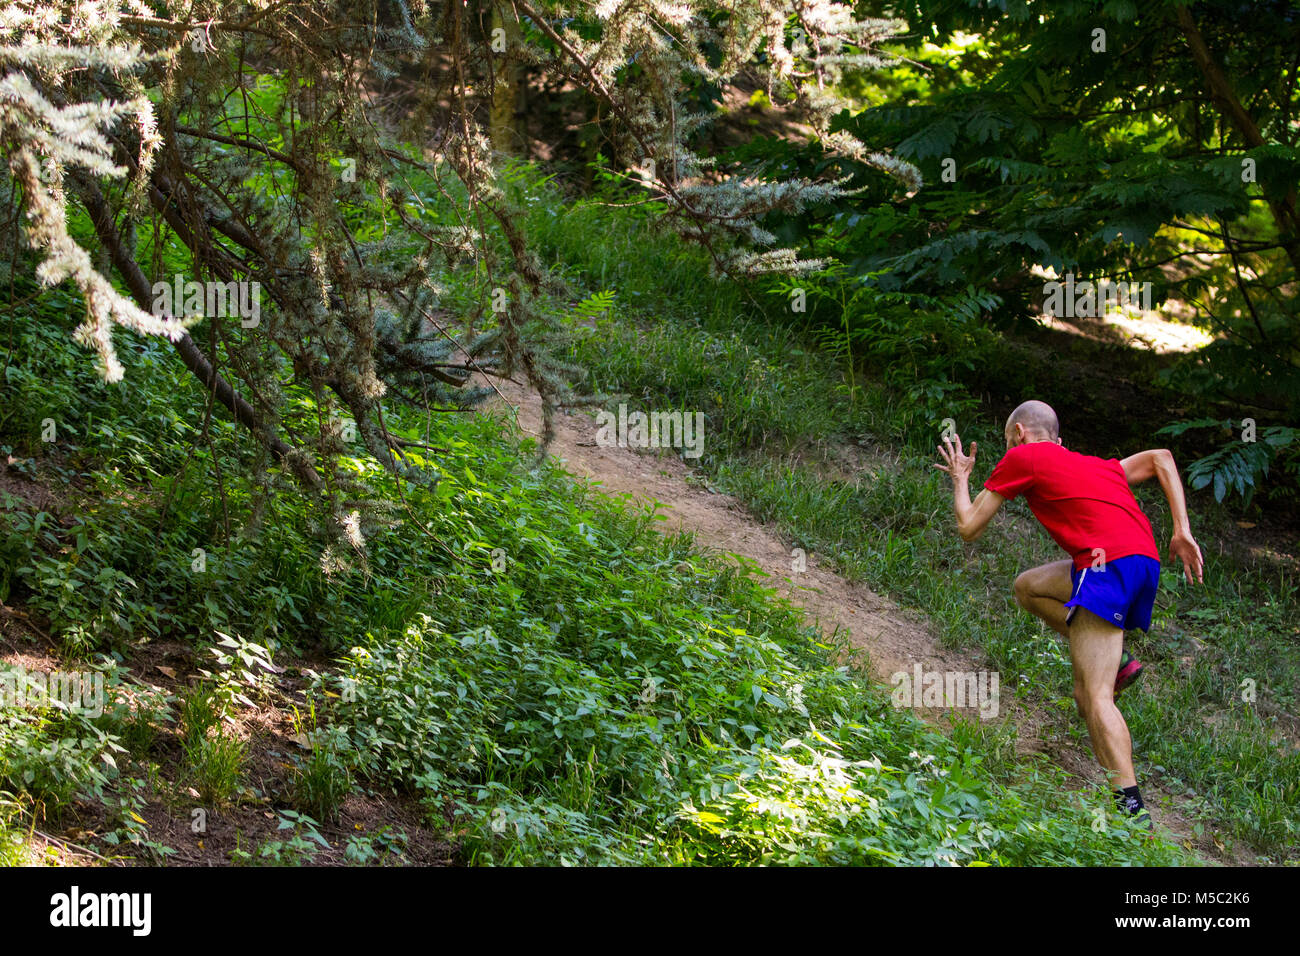 Boy training in the forest in a trail-running session Stock Photo - Alamy